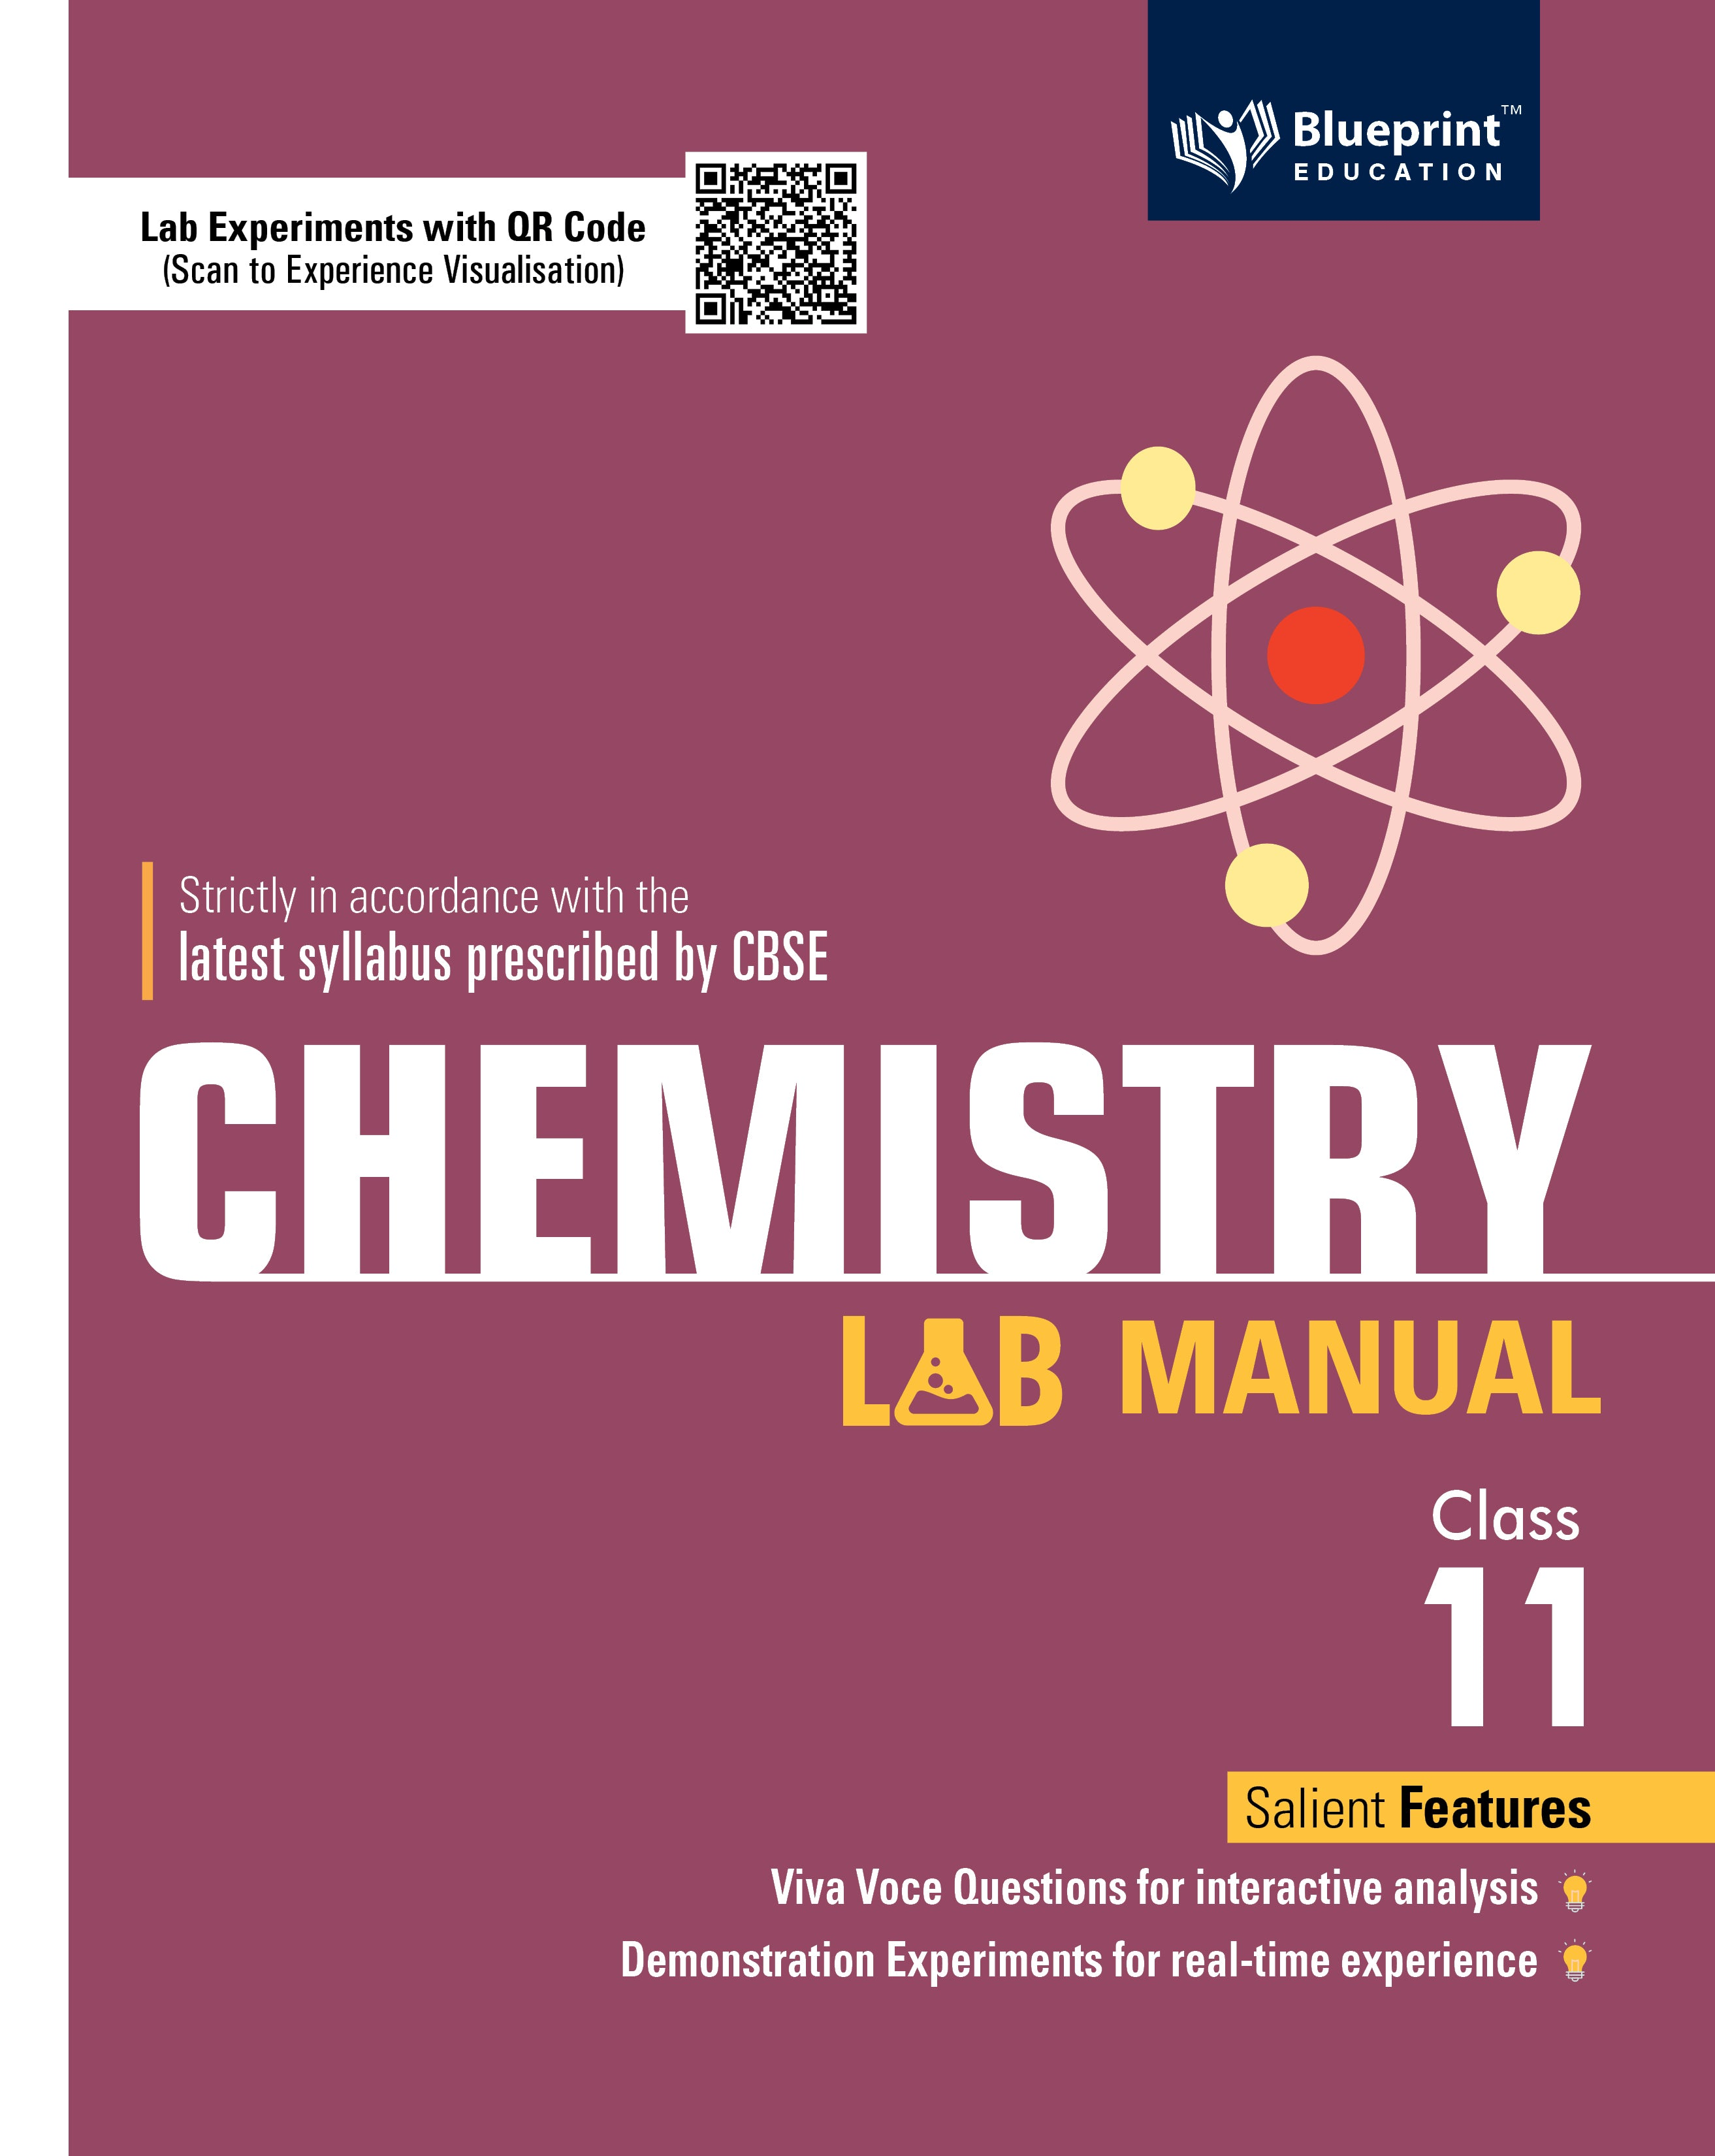 Chemistry lab manual 11 blueprint education malvernweather Image collections